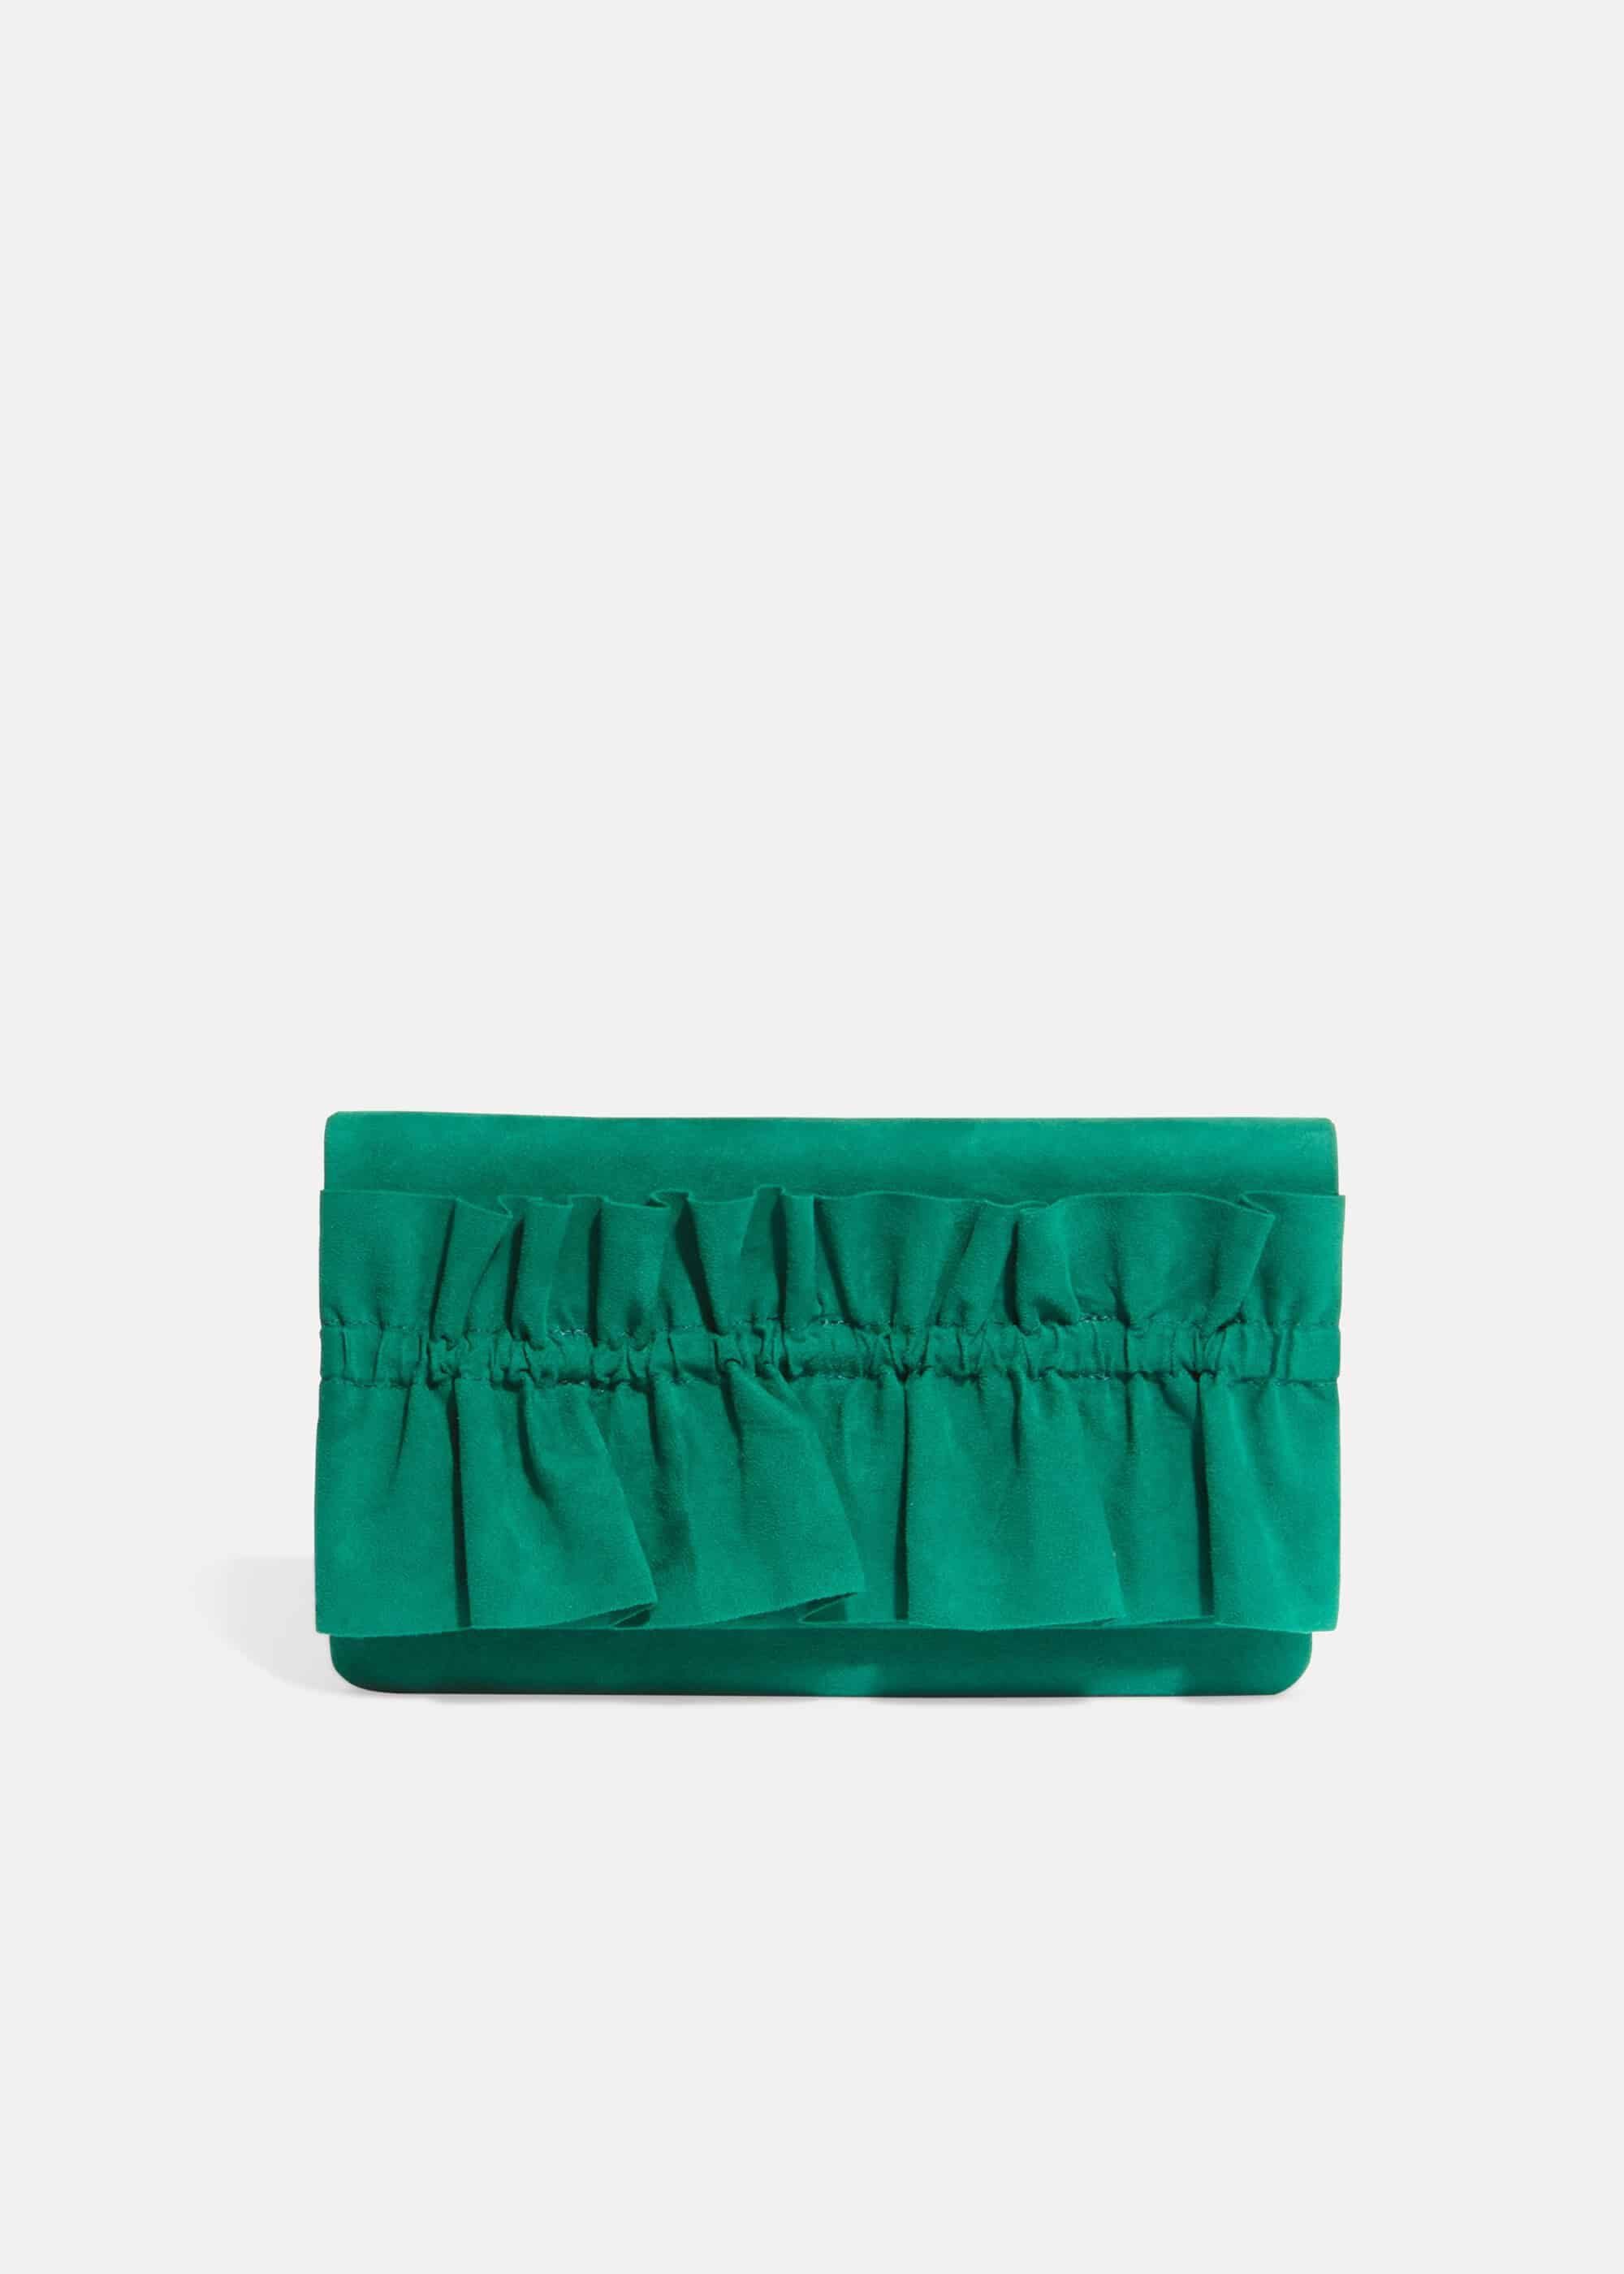 Phase Eight Romy Ruffle Clutch Bag, Green, Bag